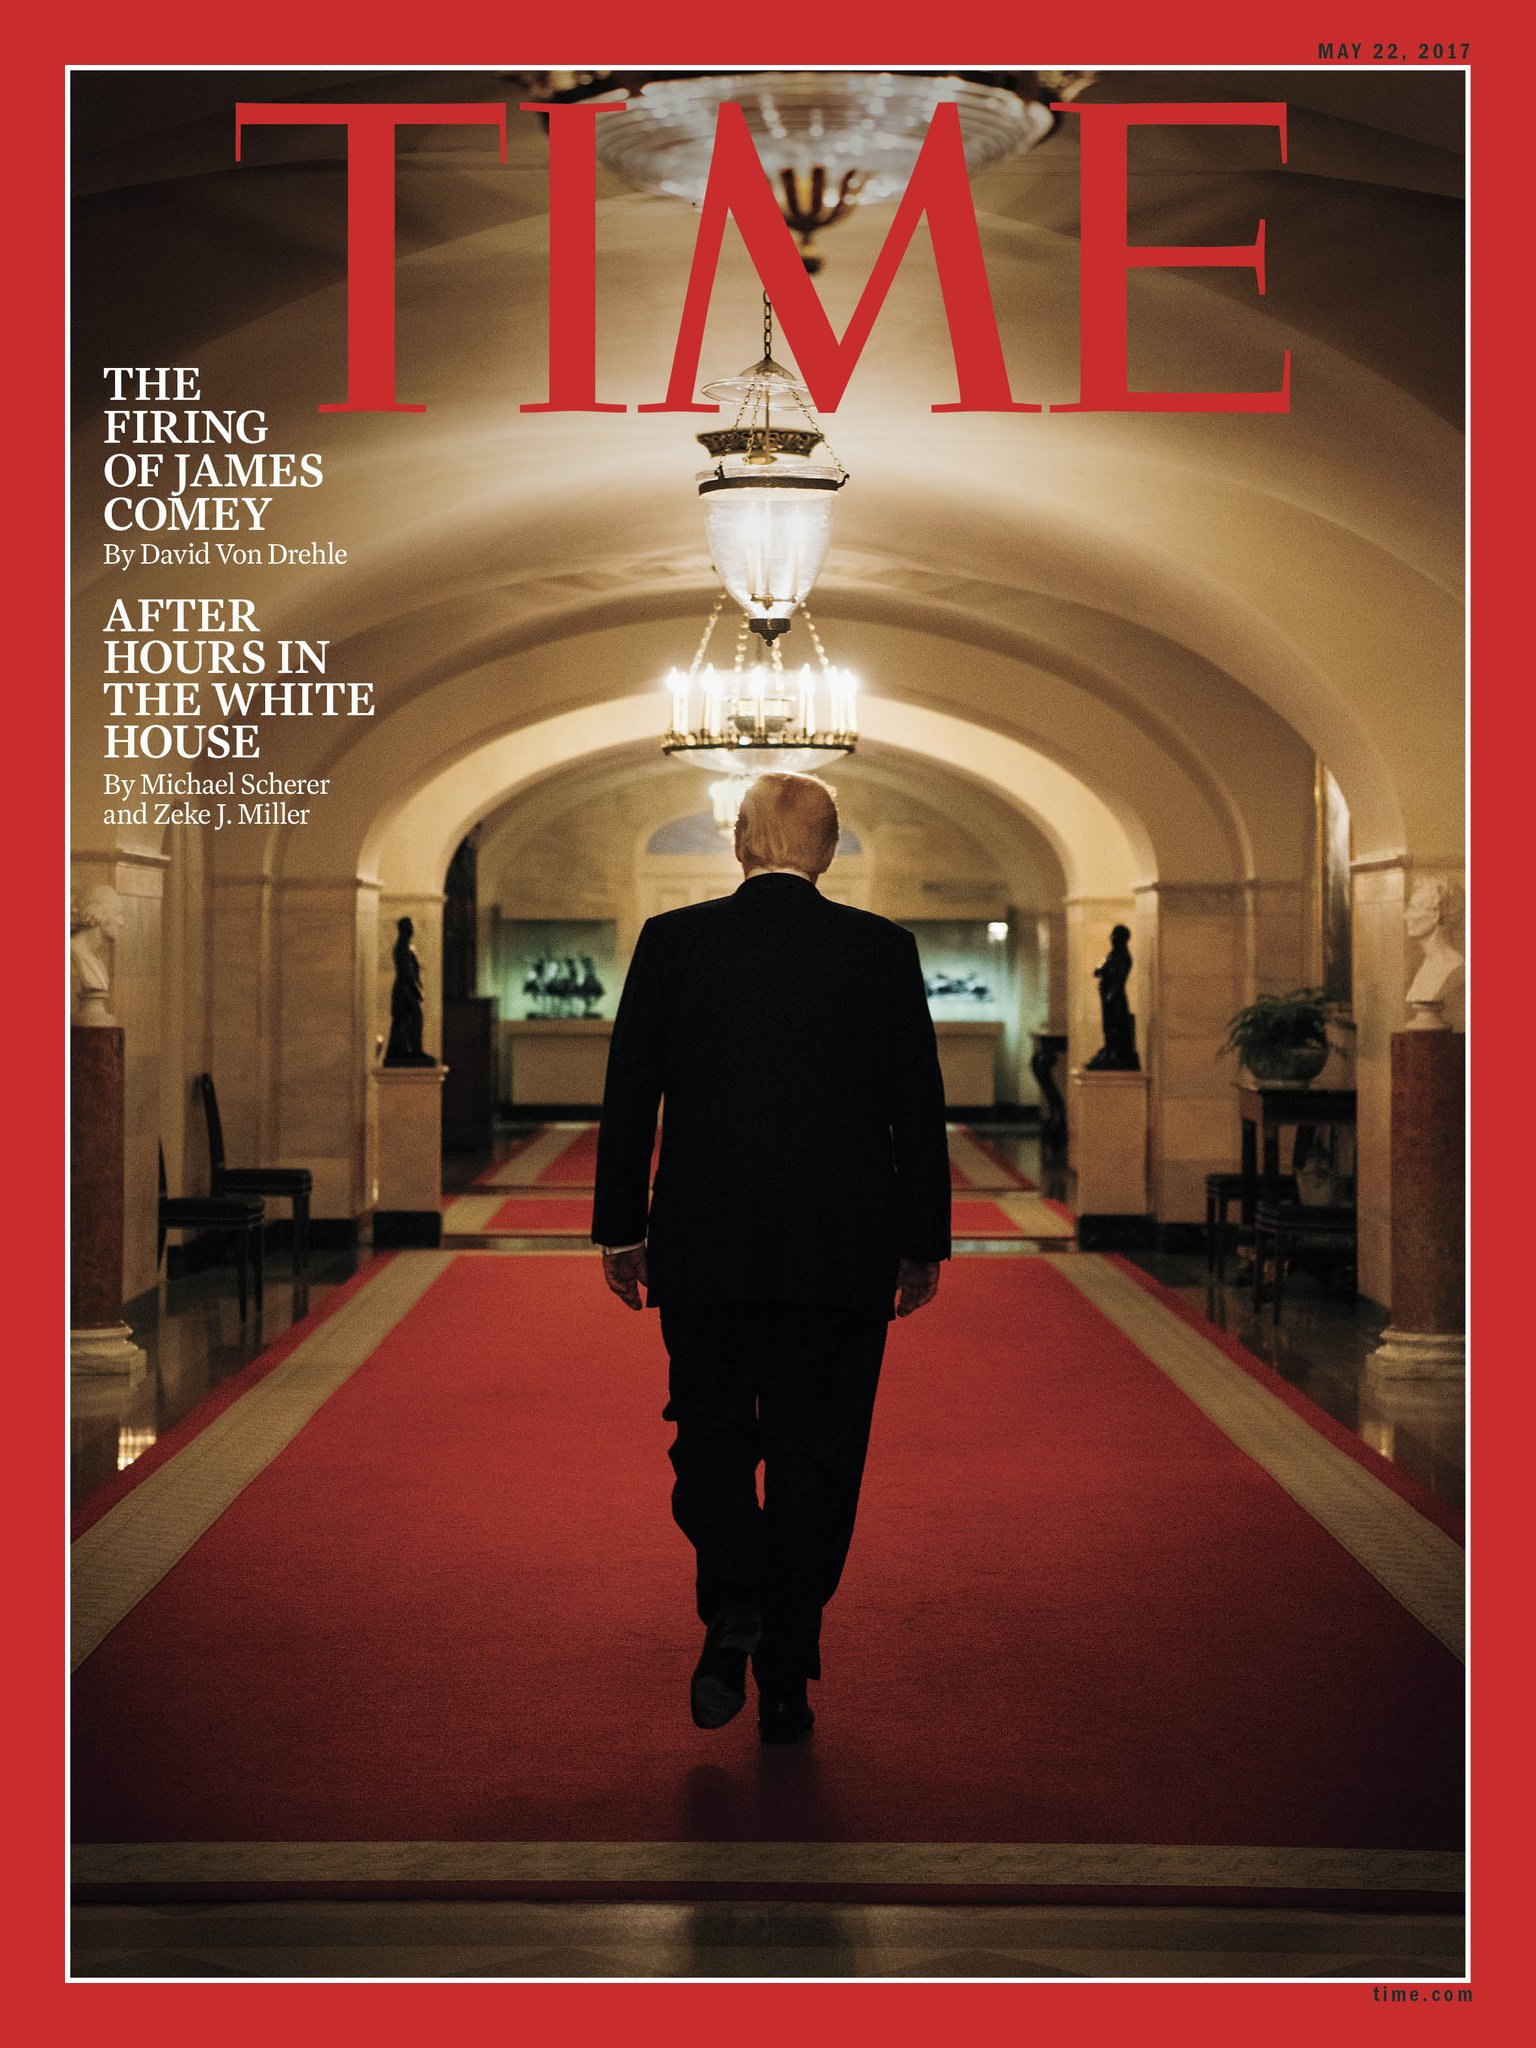 This week's @TIME cover:  https://t.co/hfiTKBaIXO https://t.co/WeSvphK9jh